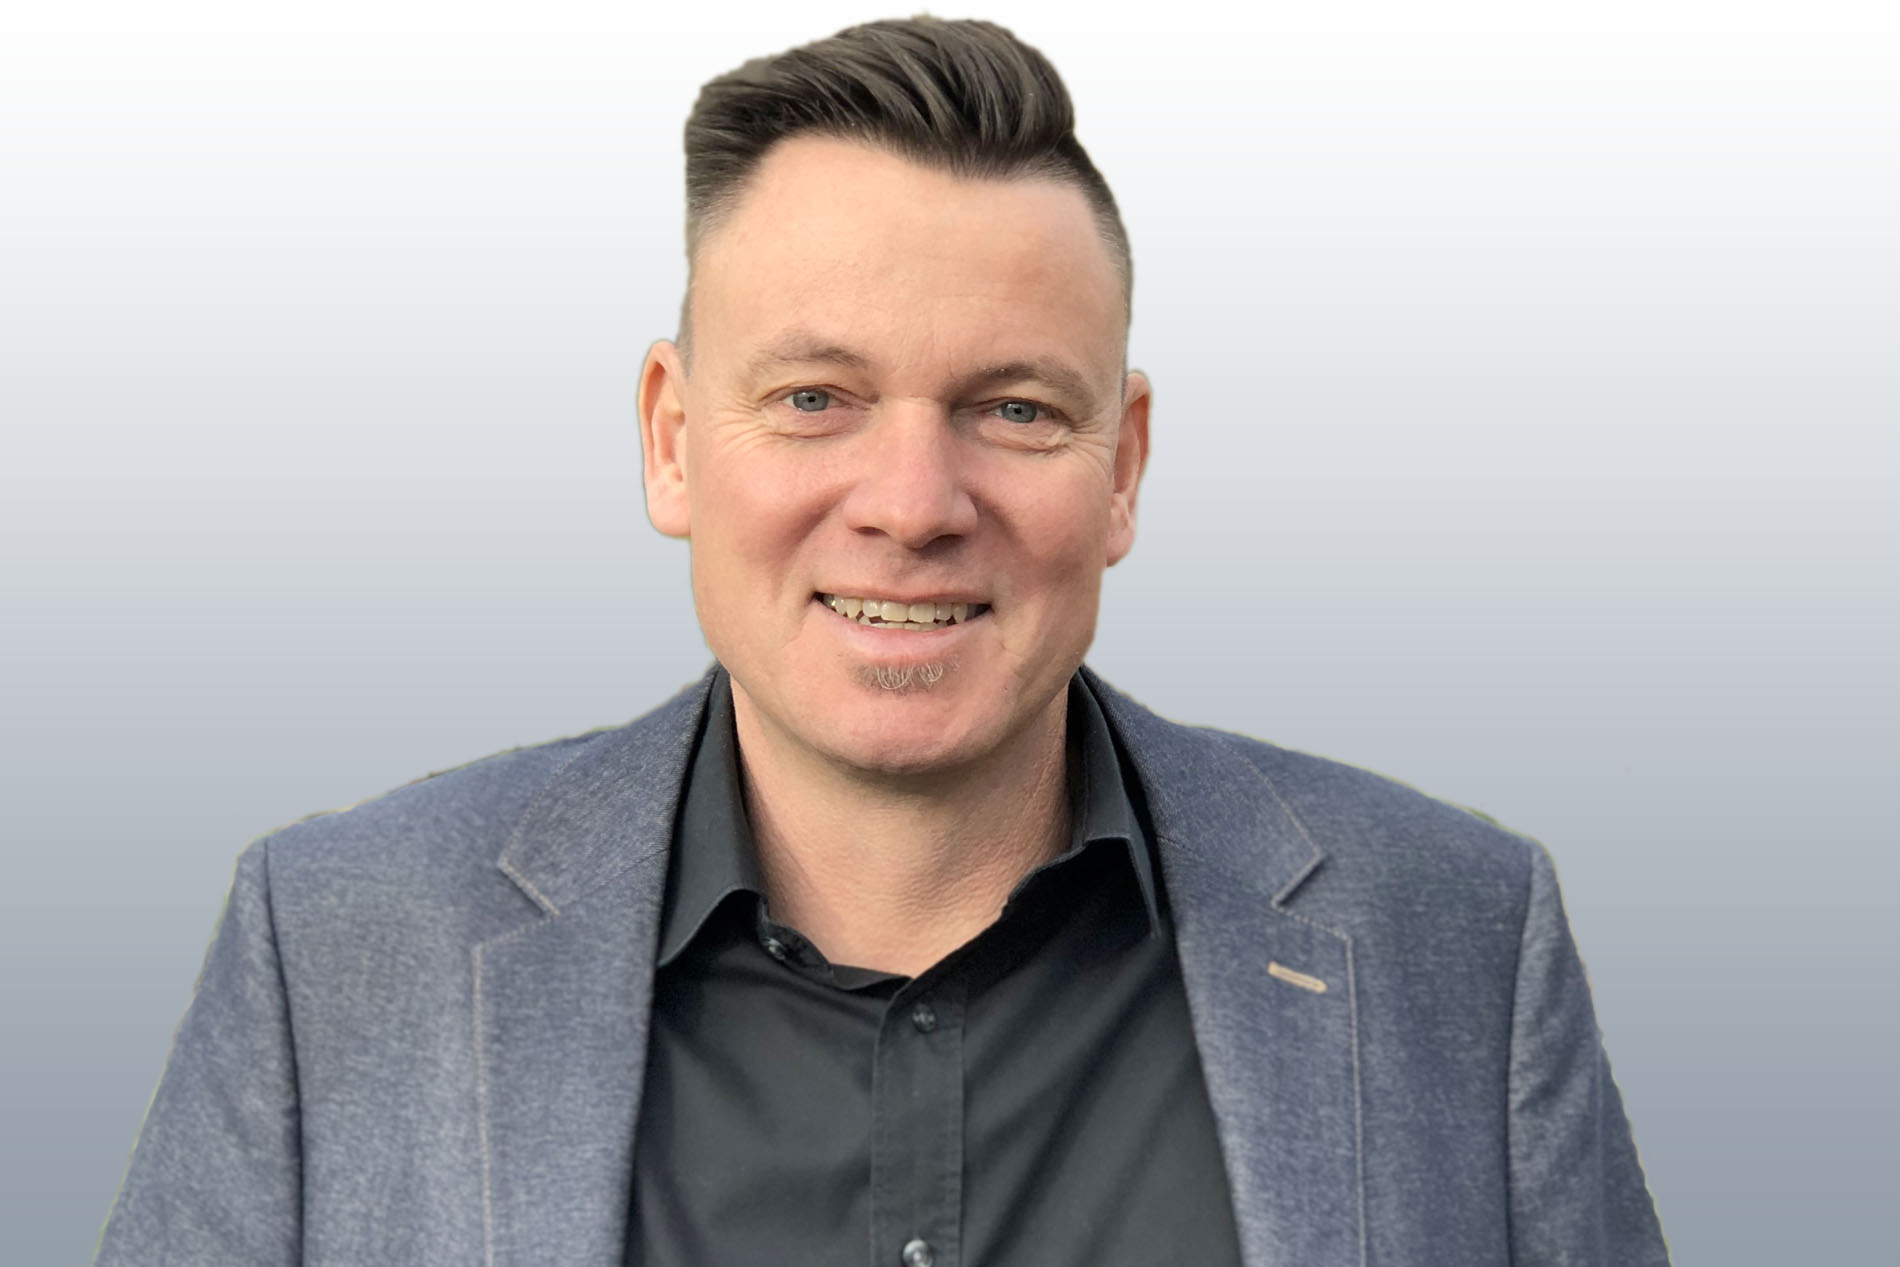 Roland Hahn has been appointed to the role of Head of Research and Development at iMPREG GmbH